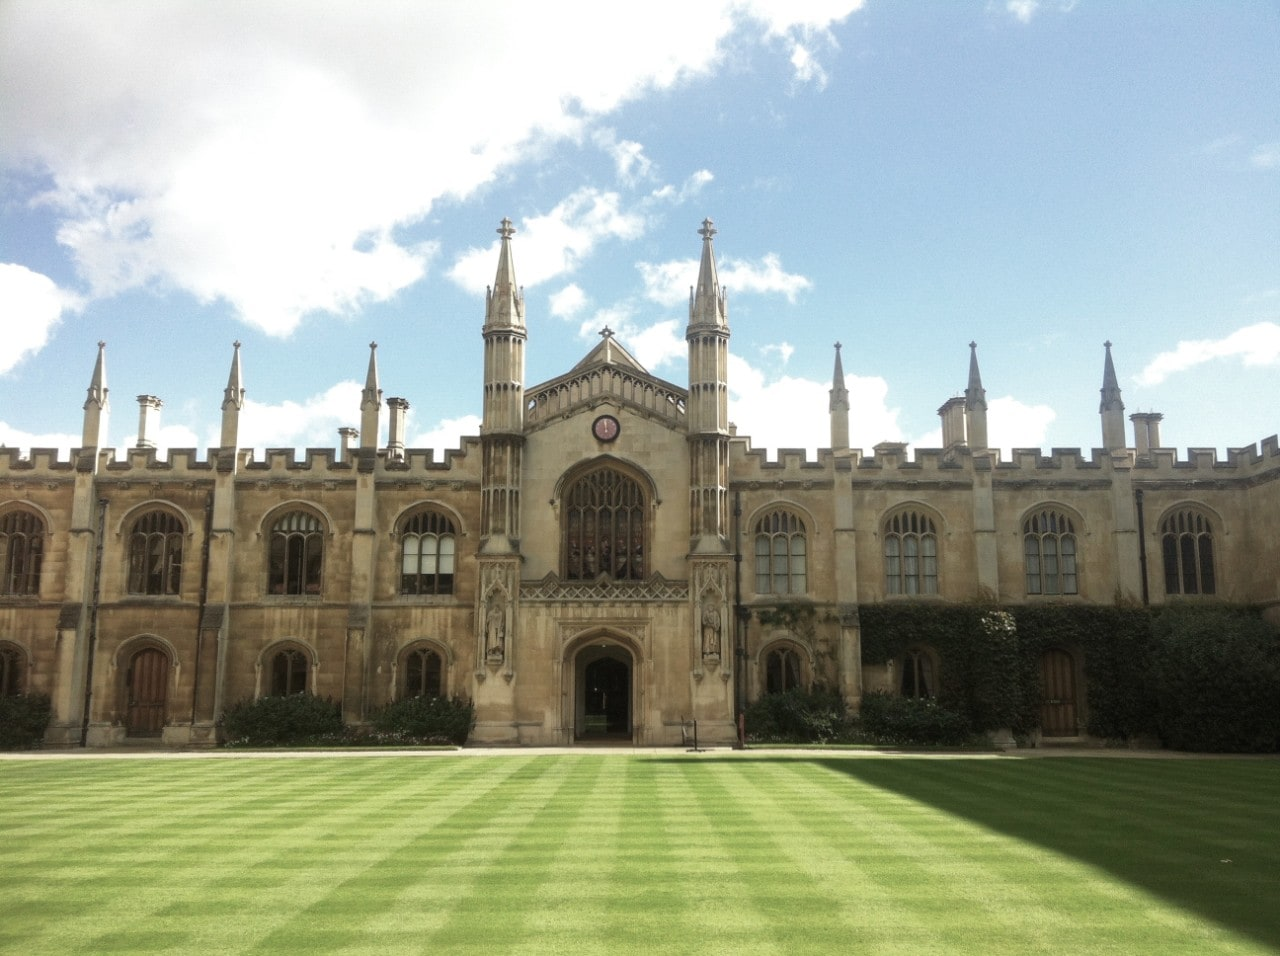 The University of Cambridge campus where Mitchell studied.